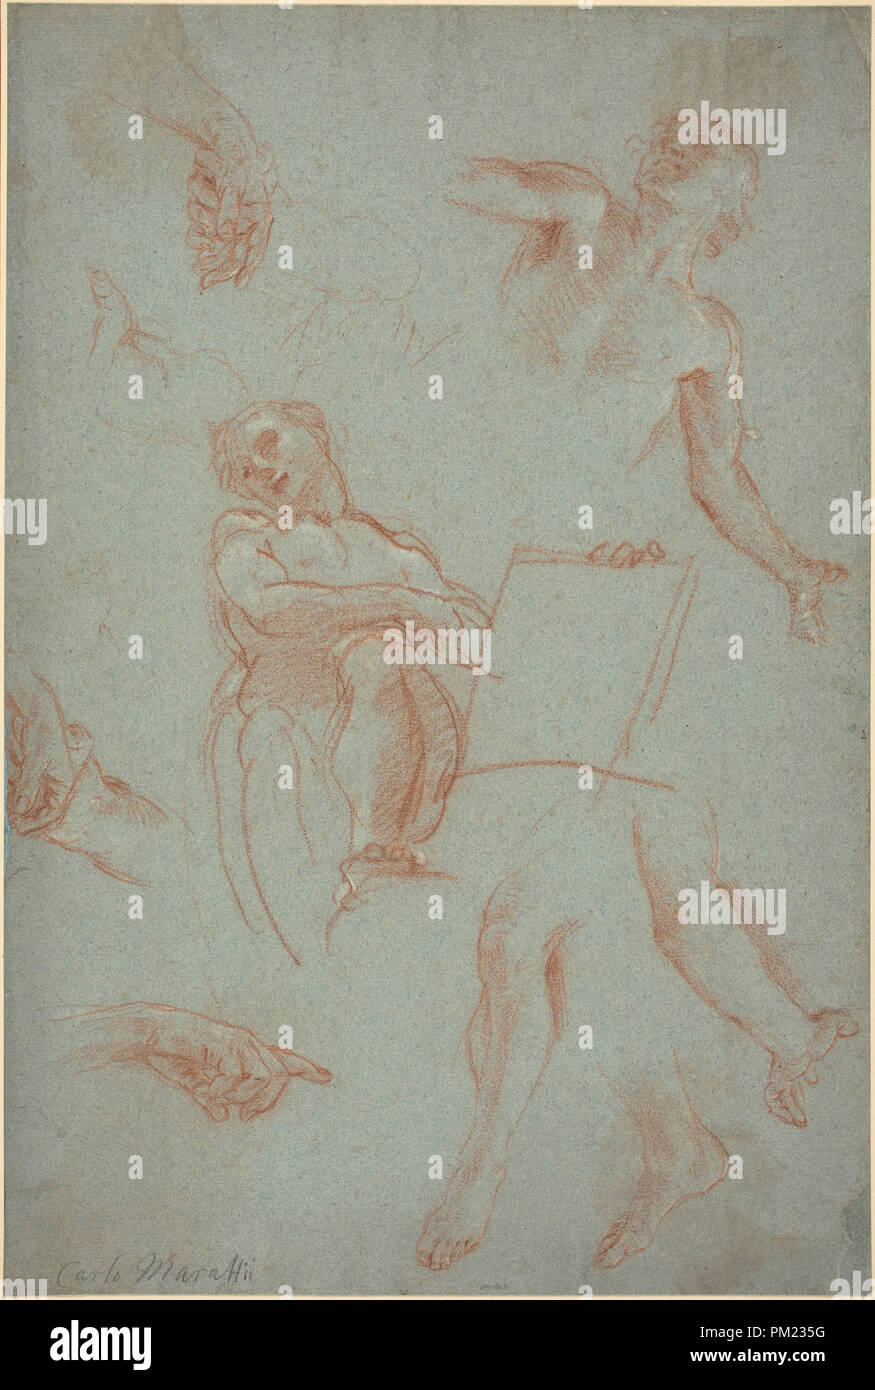 Sheet of Studies with Figures, Hands, and Feet. Dimensions: sheet: 41.3 x  27.7 cm (16 1/4 x 10 7/8 in.) mount: 53 x 40.2 cm (20 7/8 x 15 13/16 in.).